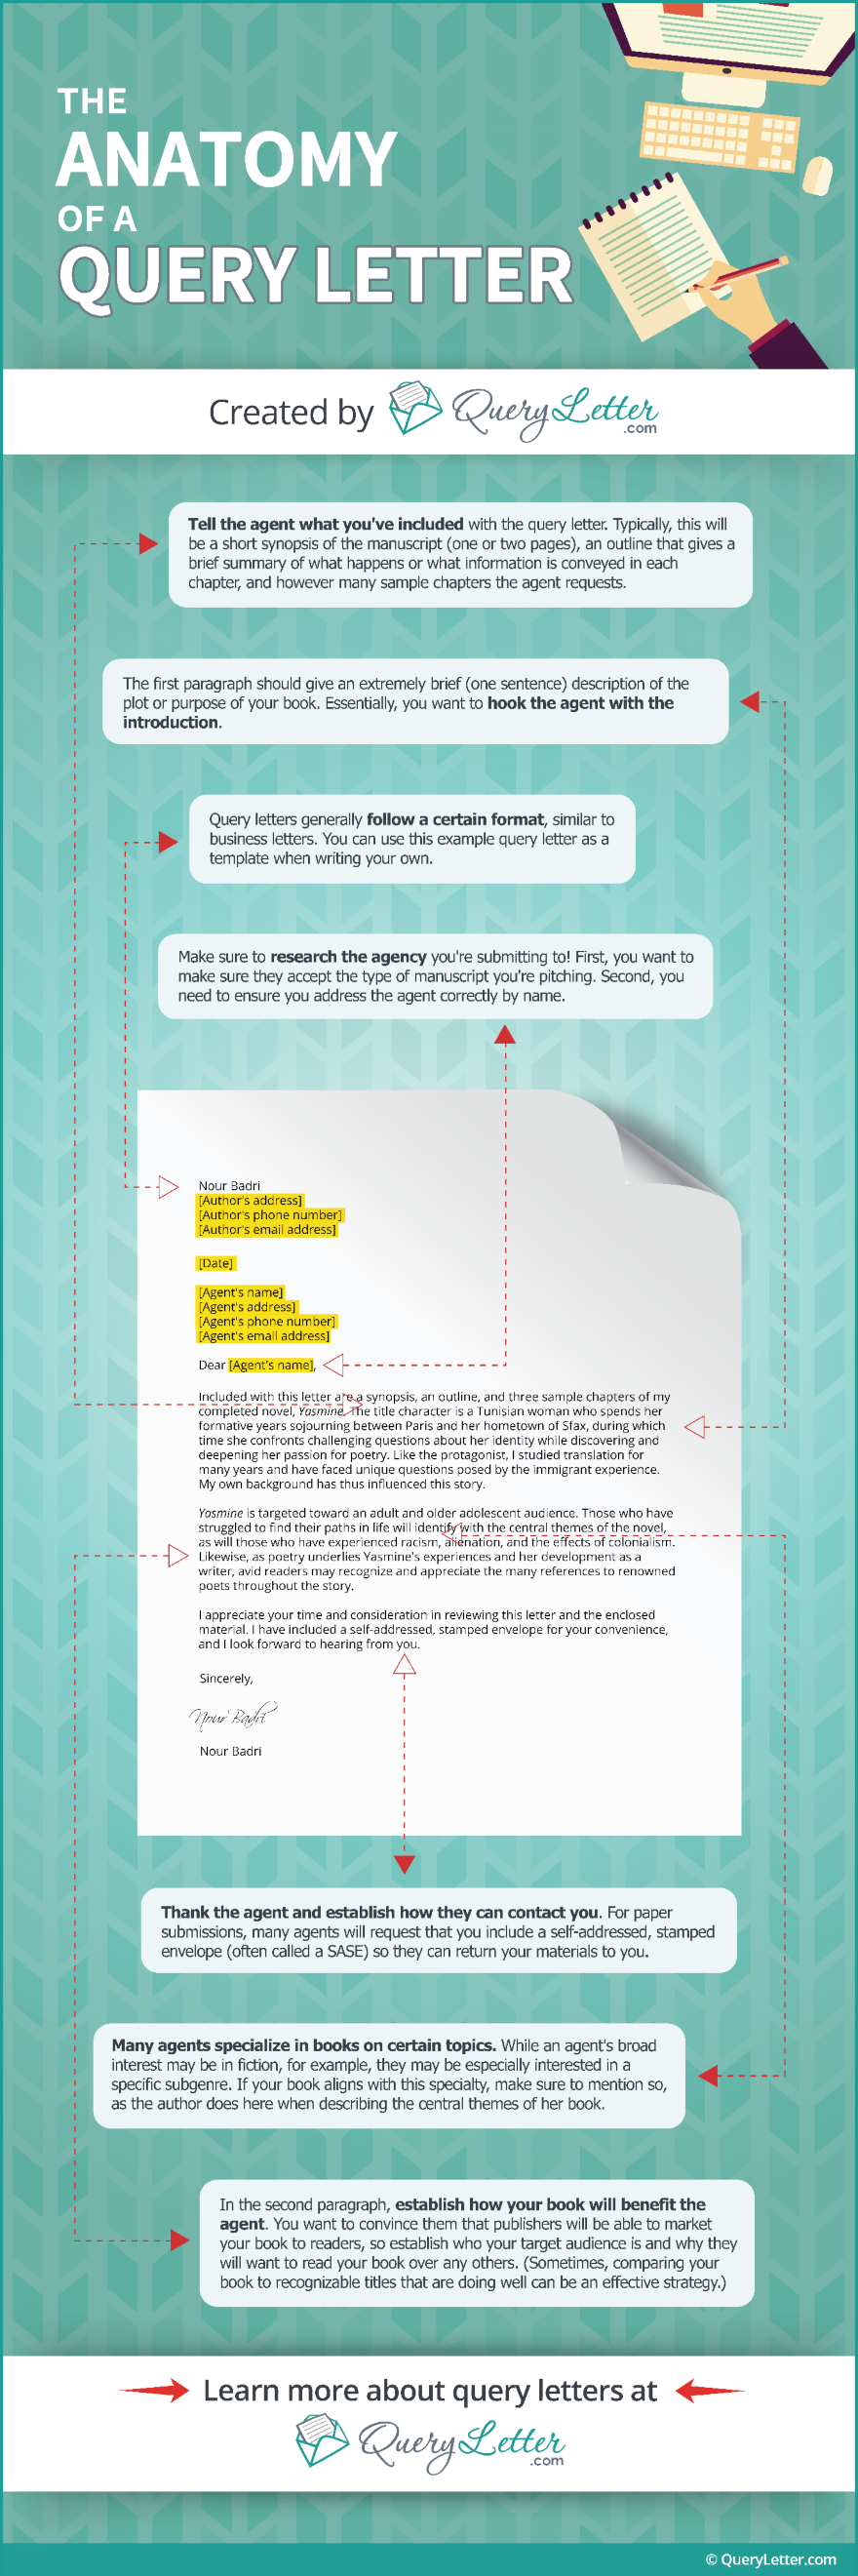 The Anatomy of a Query Letter